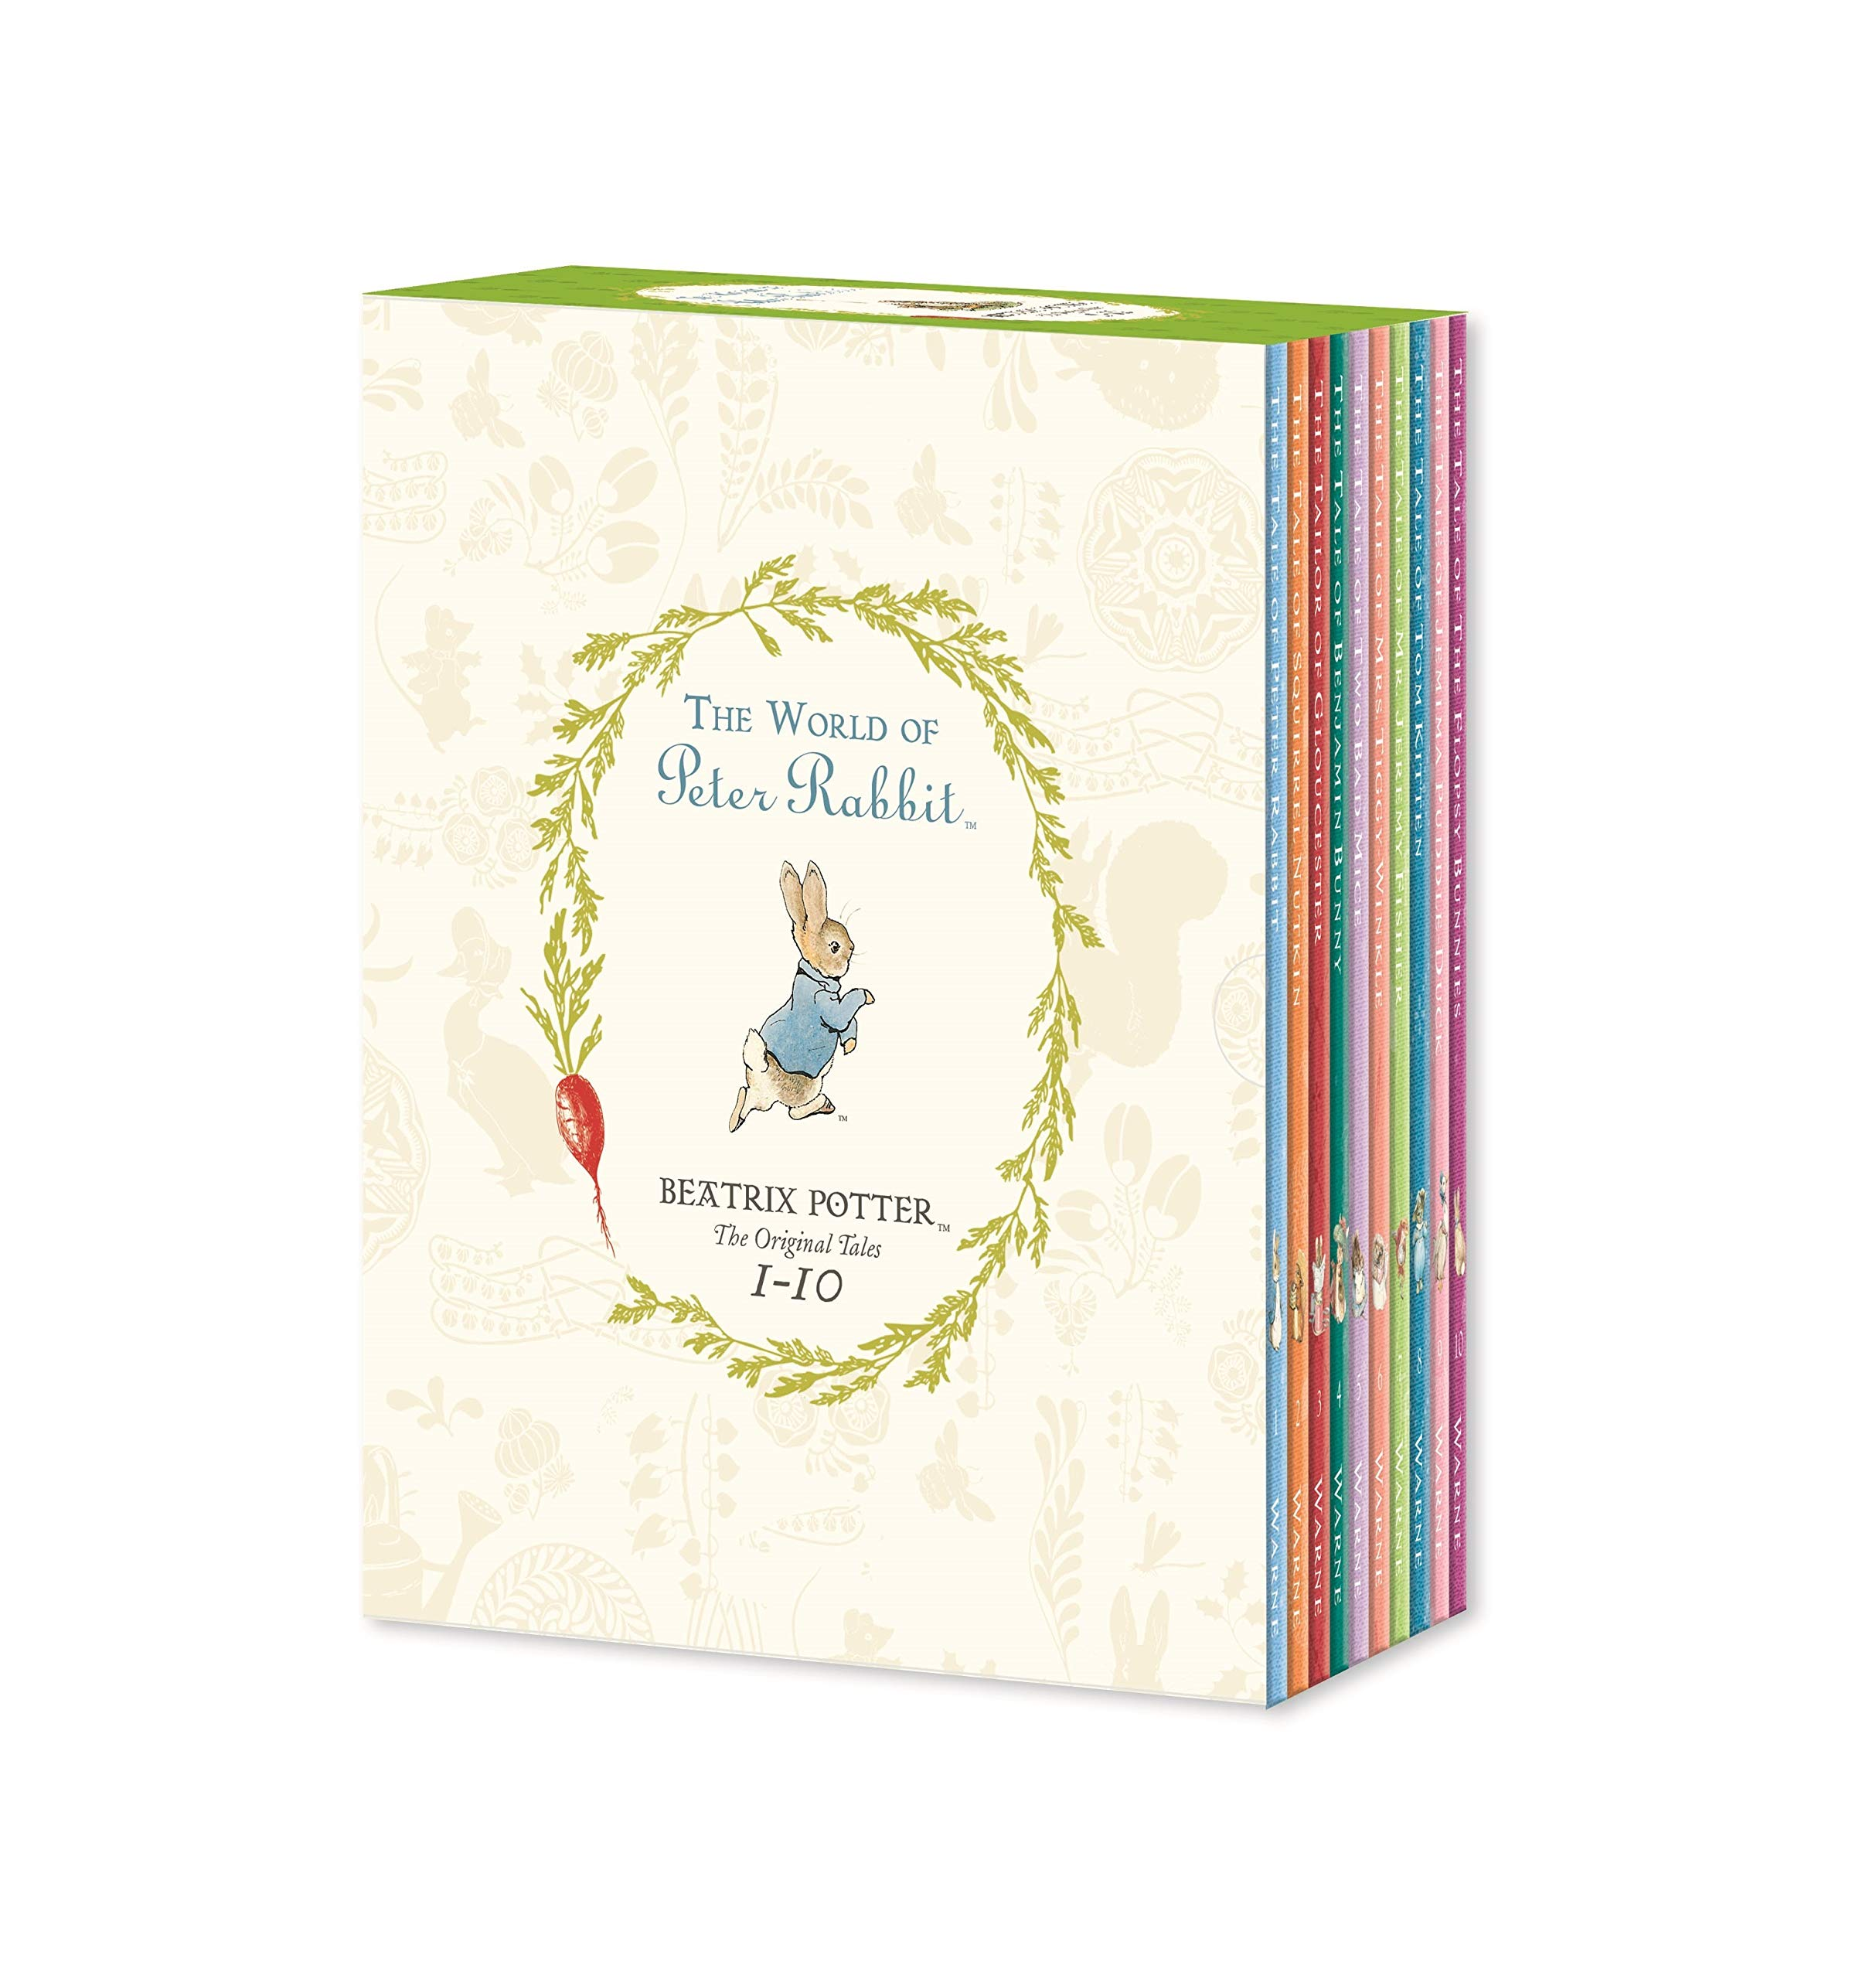 The World of Peter Rabbit picture books.jpg